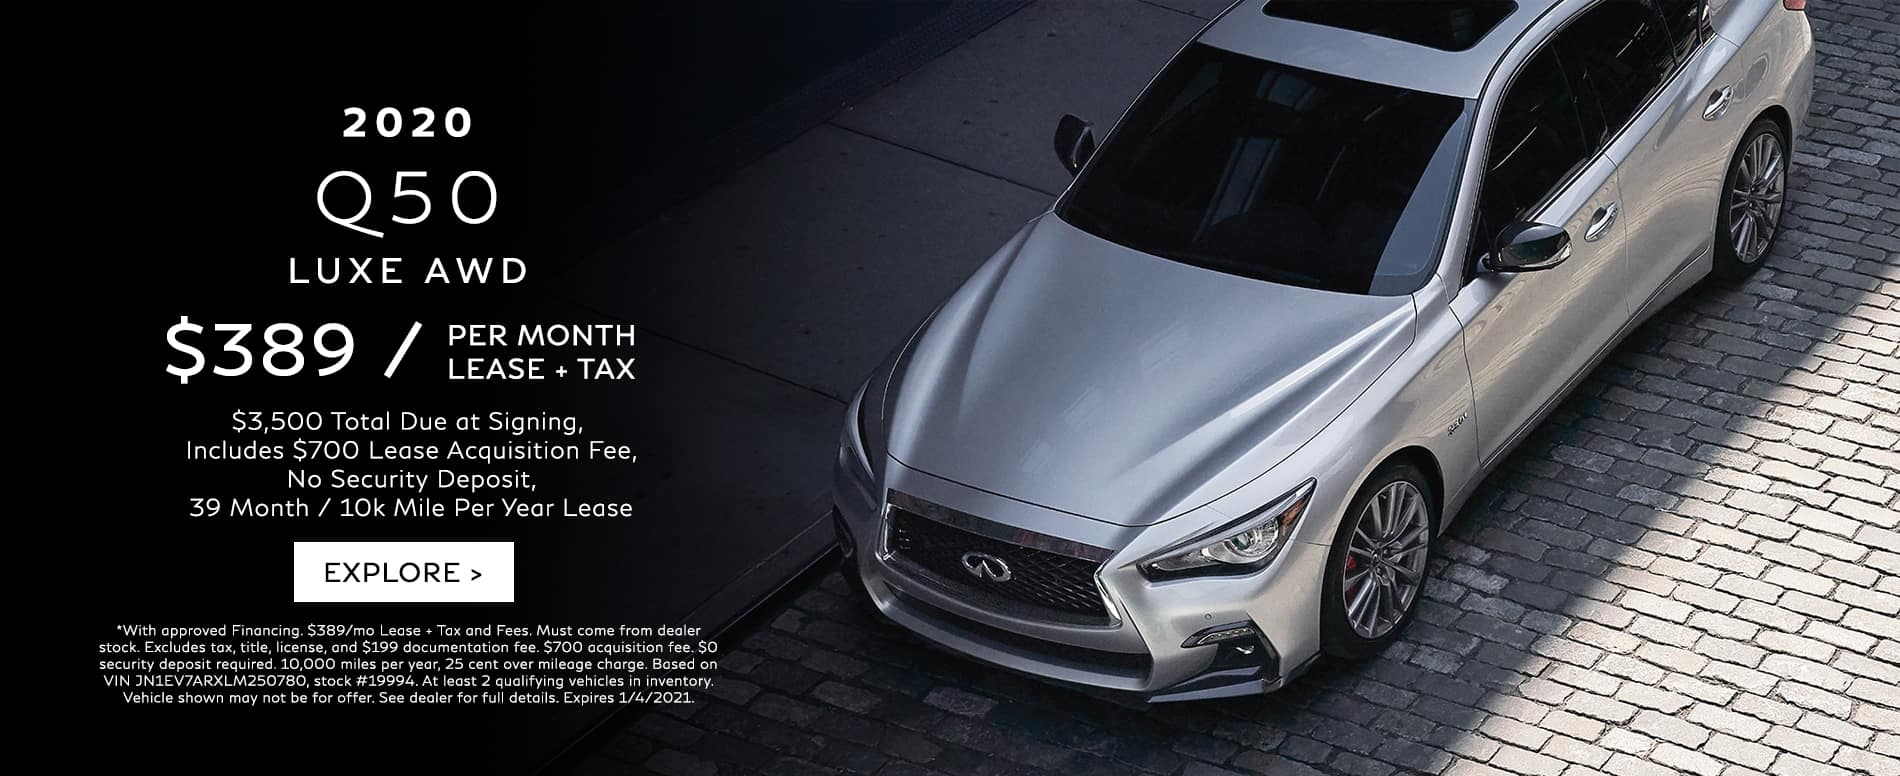 Lease a 2020 Q50 for $389/mo